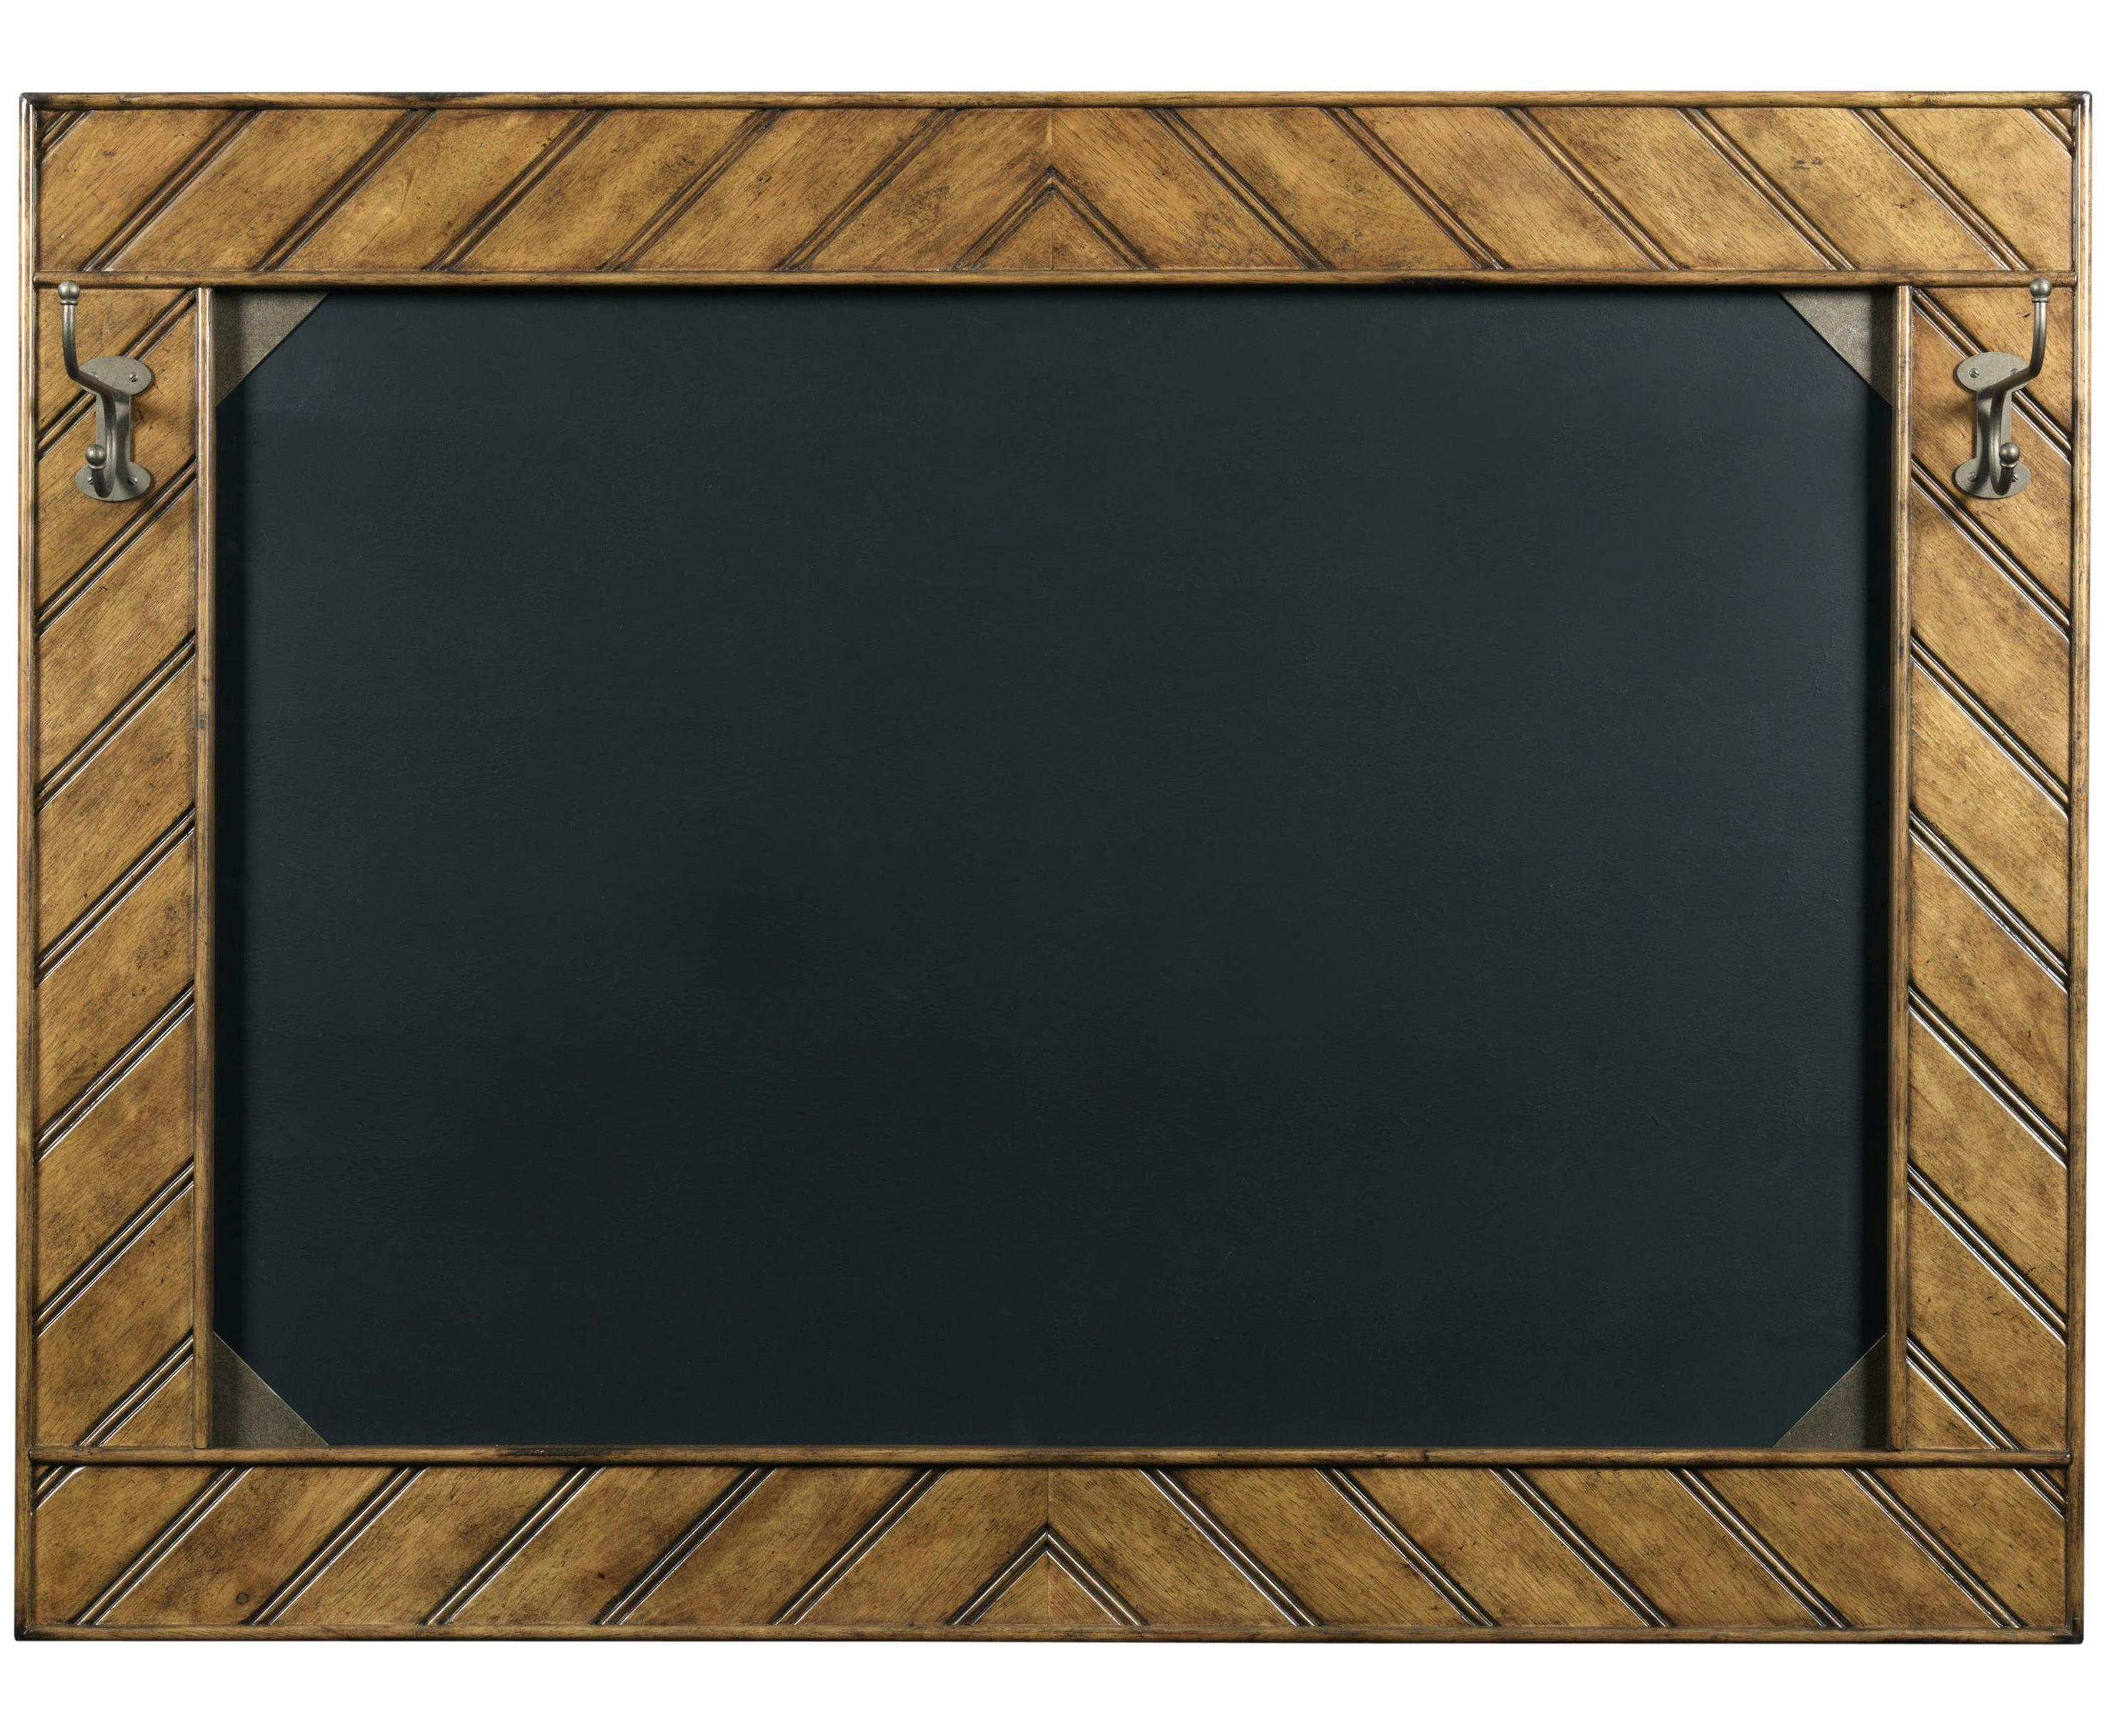 Broyhill Furniture New Vintage Ellen's Chalkboard - Item Number: 4808-010